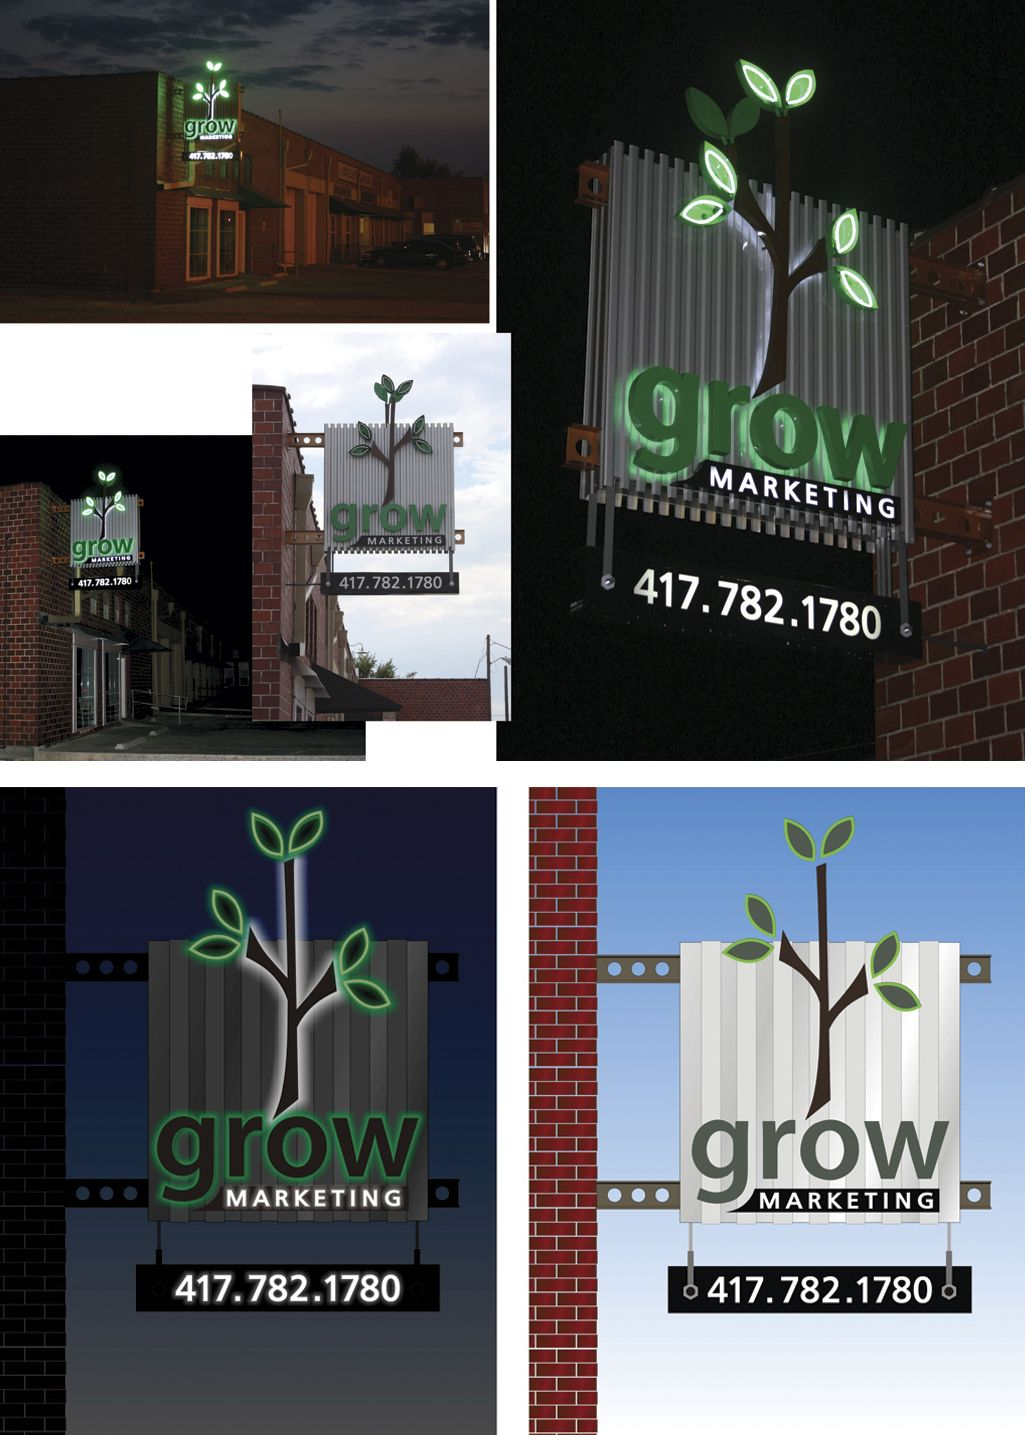 sign design google search - Sign Design Ideas